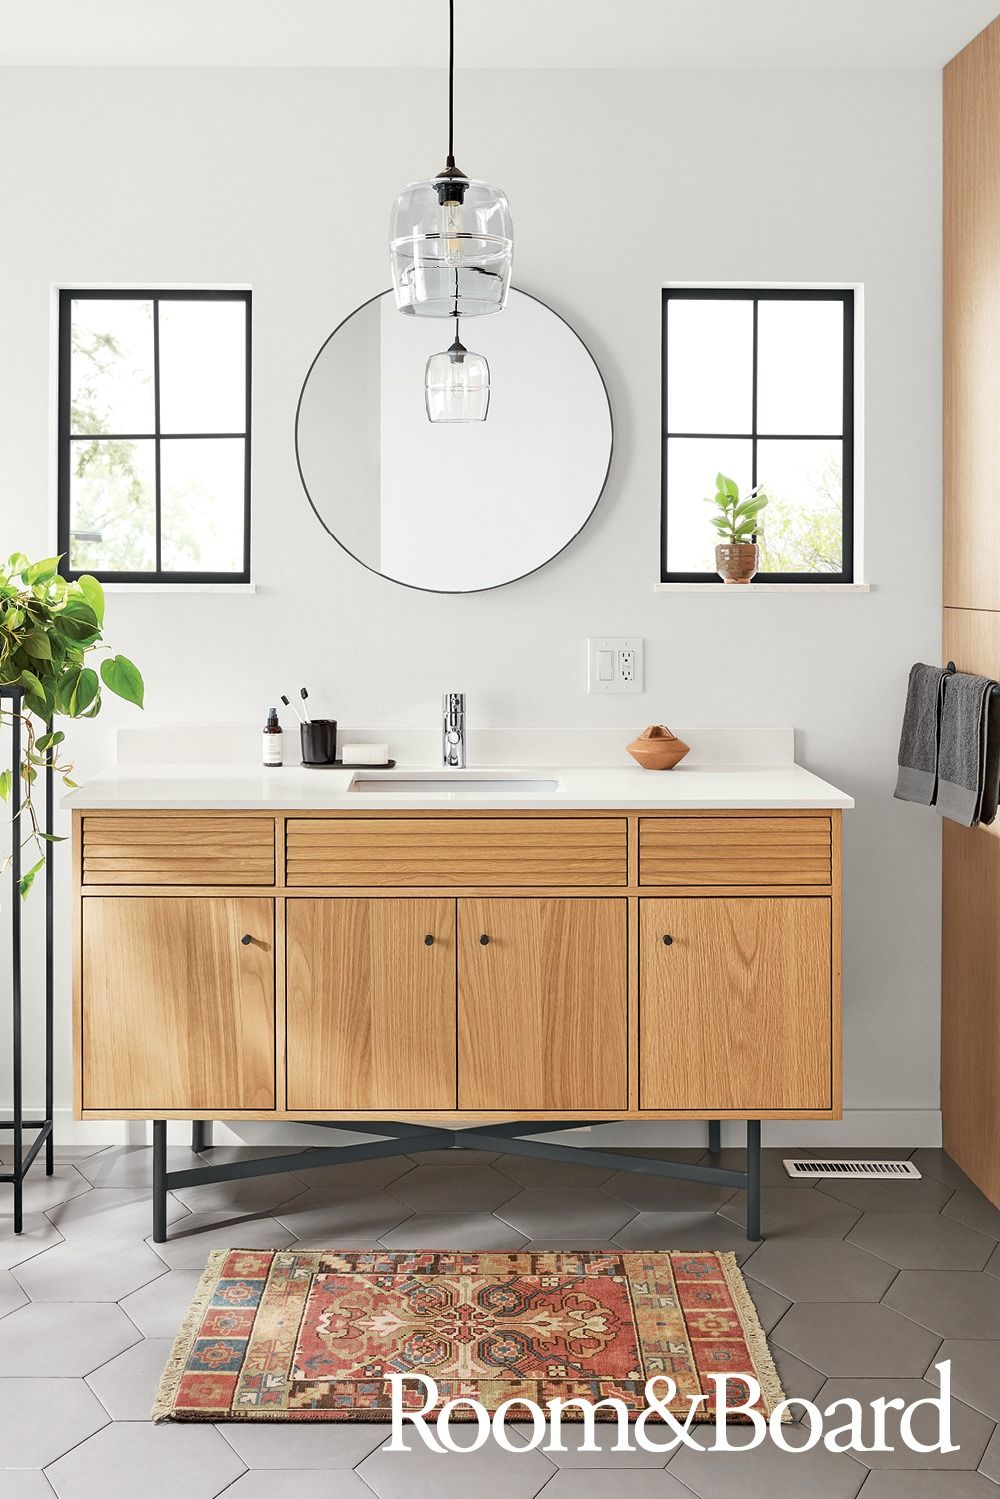 Our bath collection showcases the signature modern look and